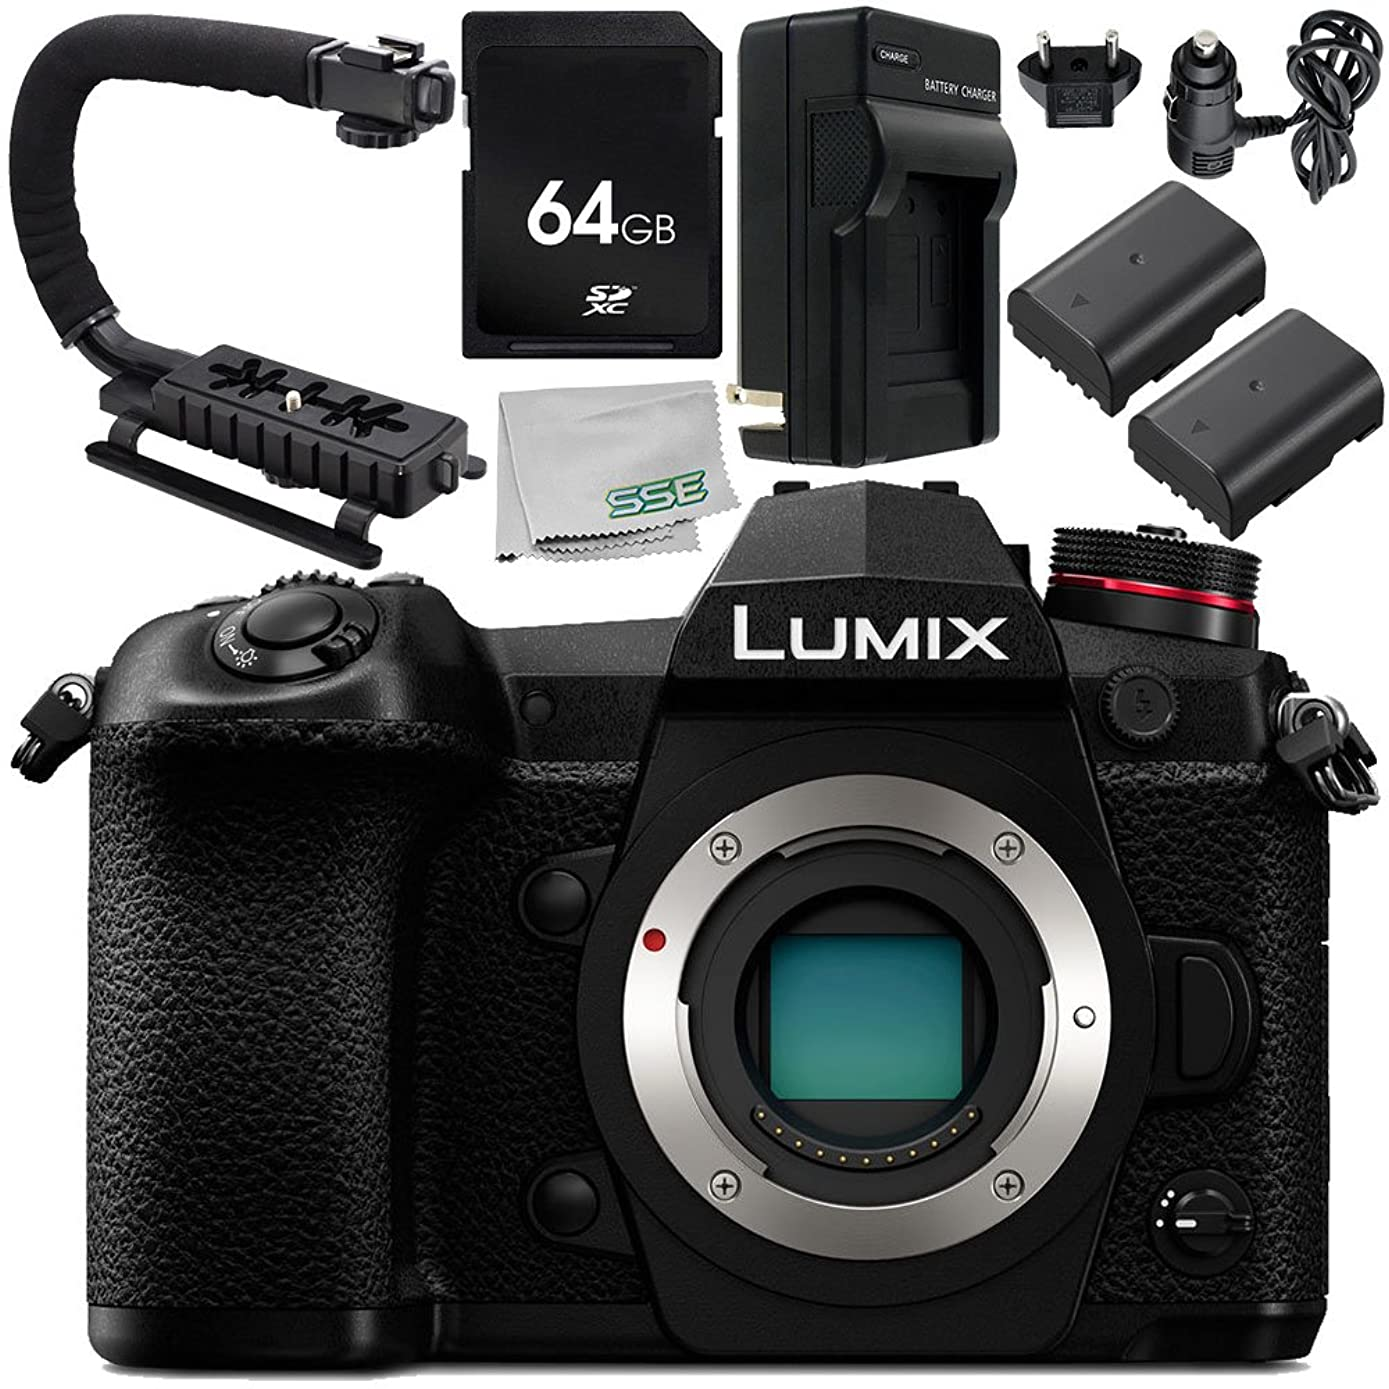 Panasonic Lumix DC-G9 Mirrorless Micro Four Thirds Digital Camera (Body Only) 7PC Accessory Kit– Includes 64GB SD Memory Card + 2X Replacement Batteries + More - International Version (No Warranty)